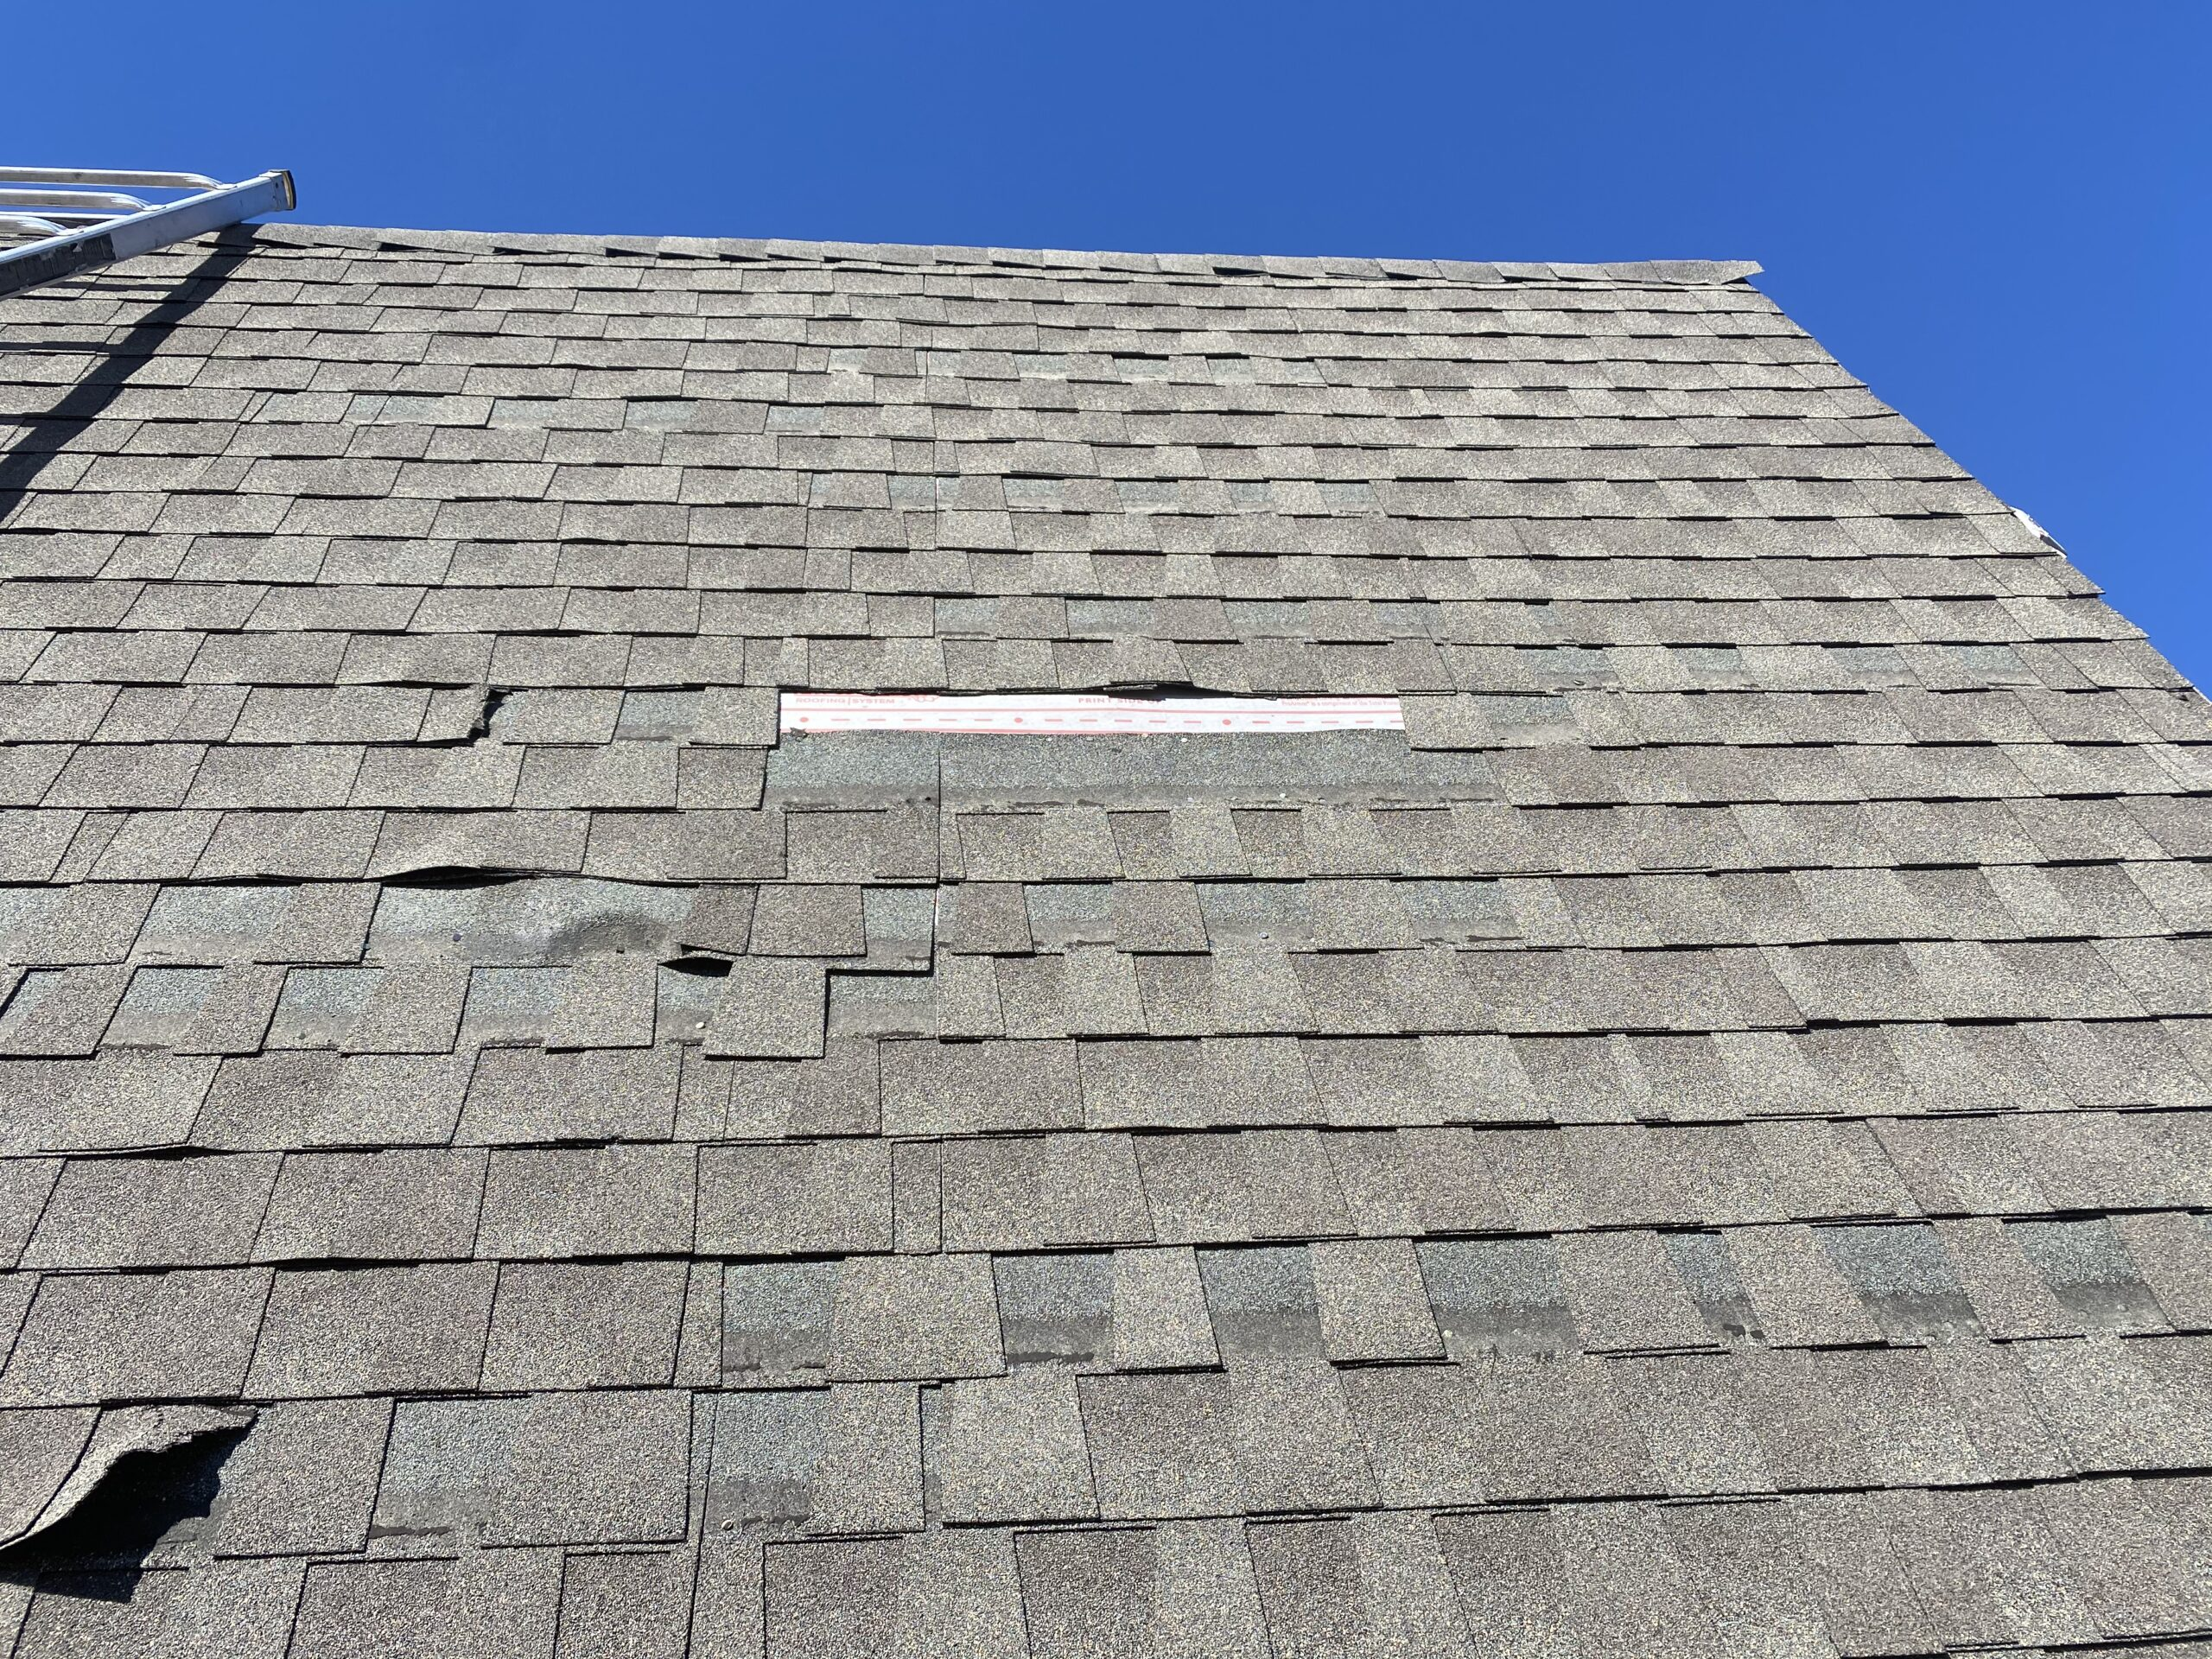 This is a picture of shingles that are missing